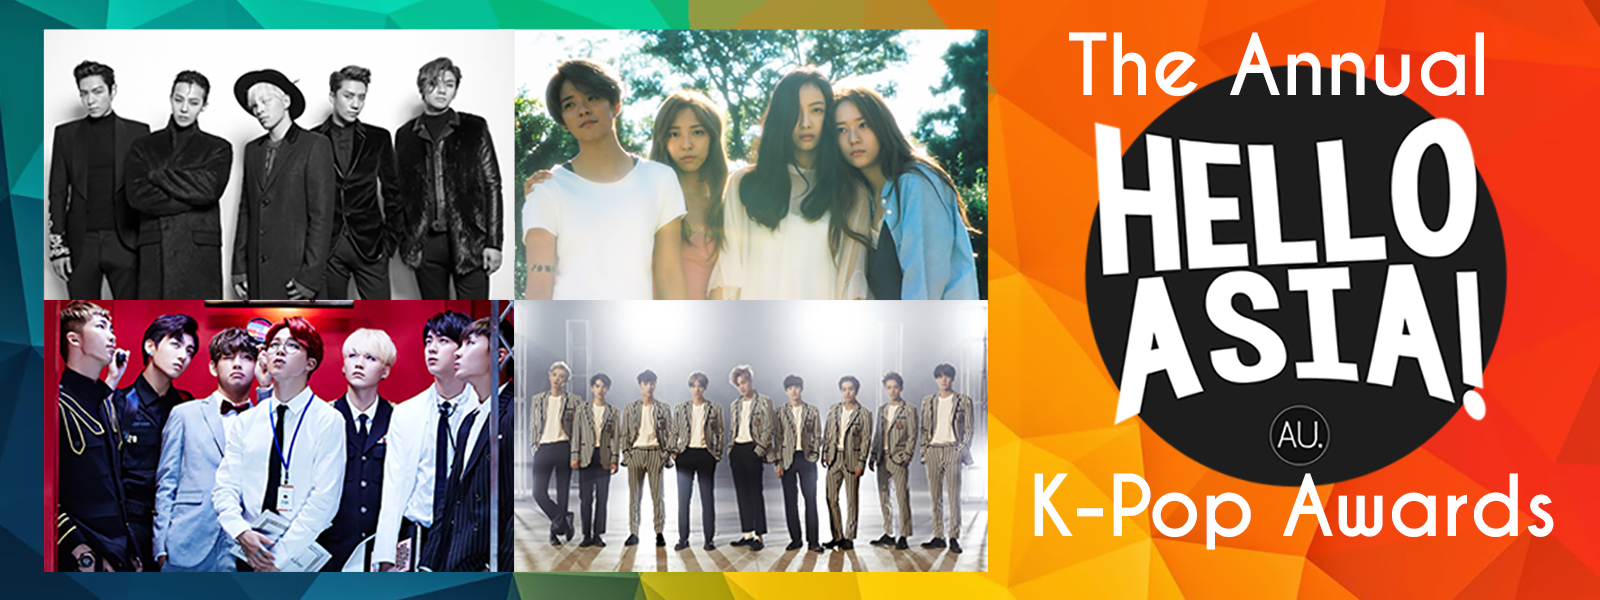 Full winners list from 2015 Hello Asia K-Pop Awards